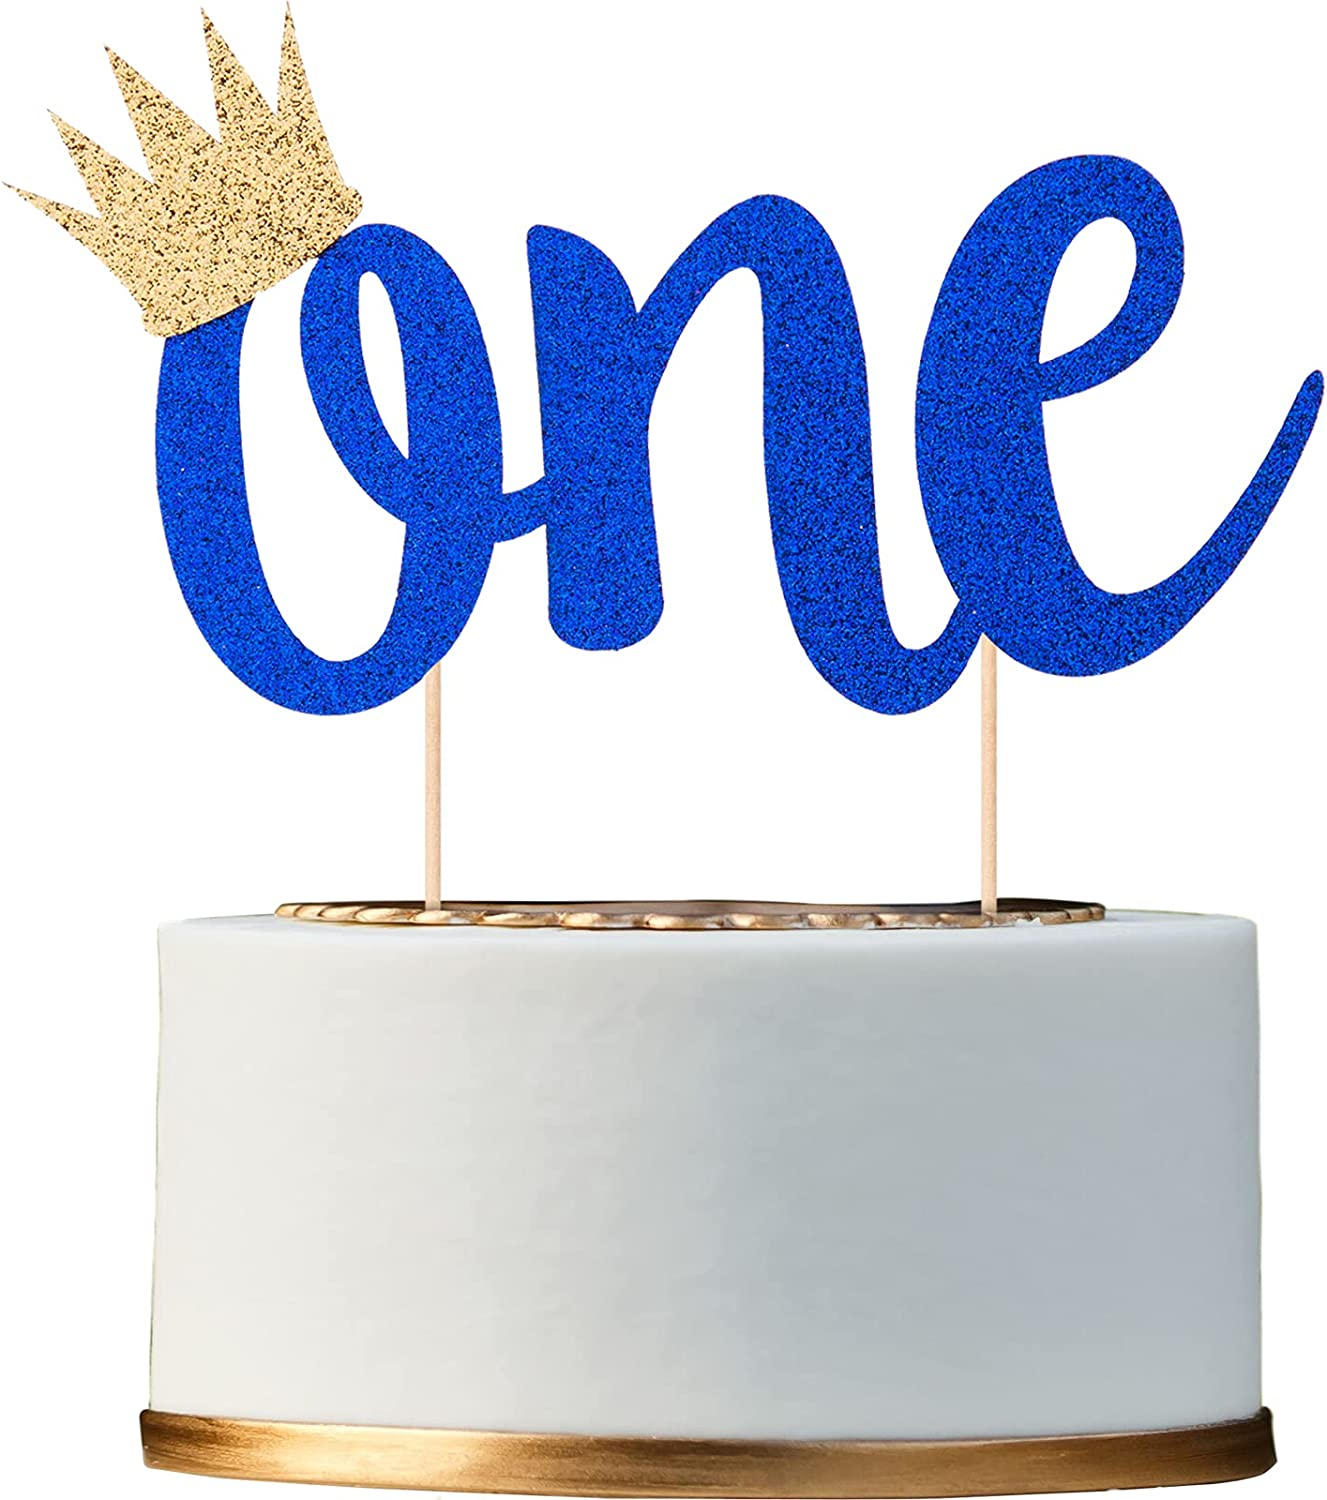 Glitter Cake Topper for Limited Special Price High quality 1st Birthday Blue Royal Boy with Crown